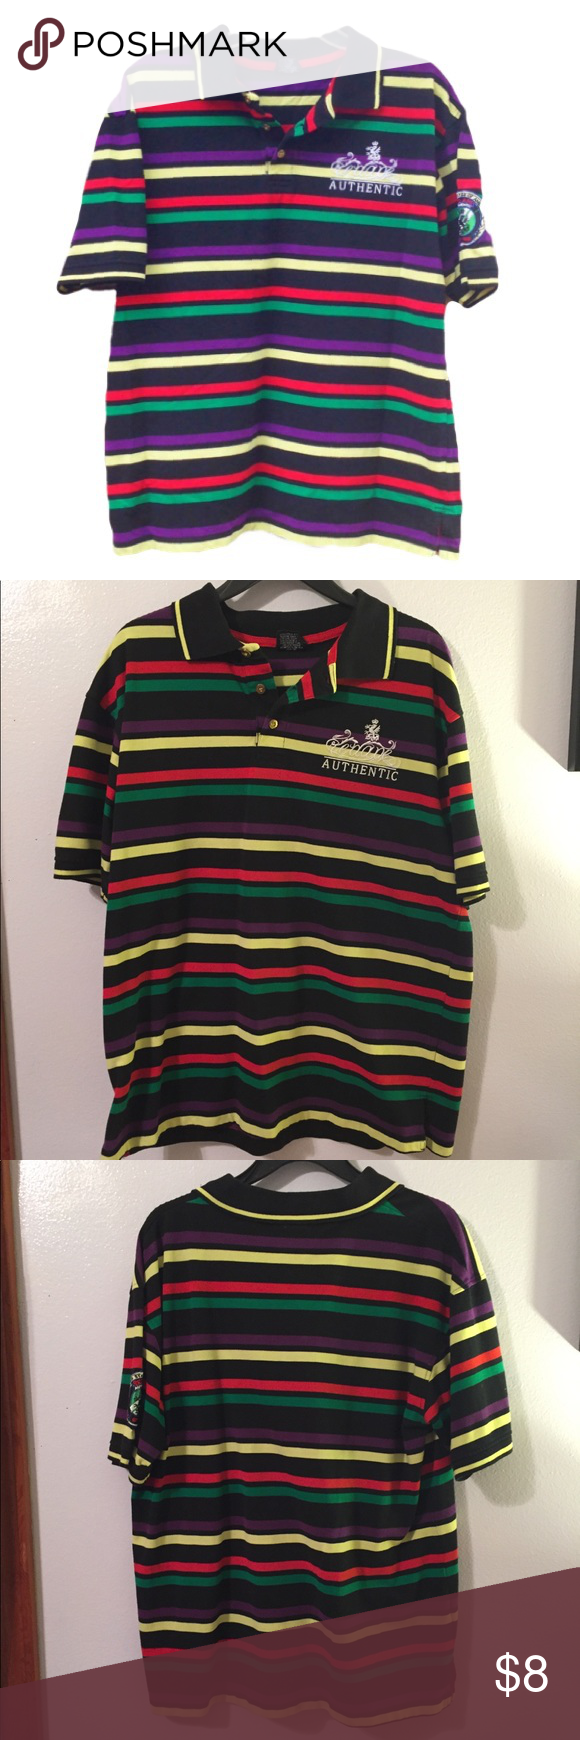 d51c94e3 Red Ape Men's multicolored Striped Polo Men's Red Ape Colorful Polo. Size  Large. Cotton & Polyester blend. Excellent condition Red Ape Shirts Polos